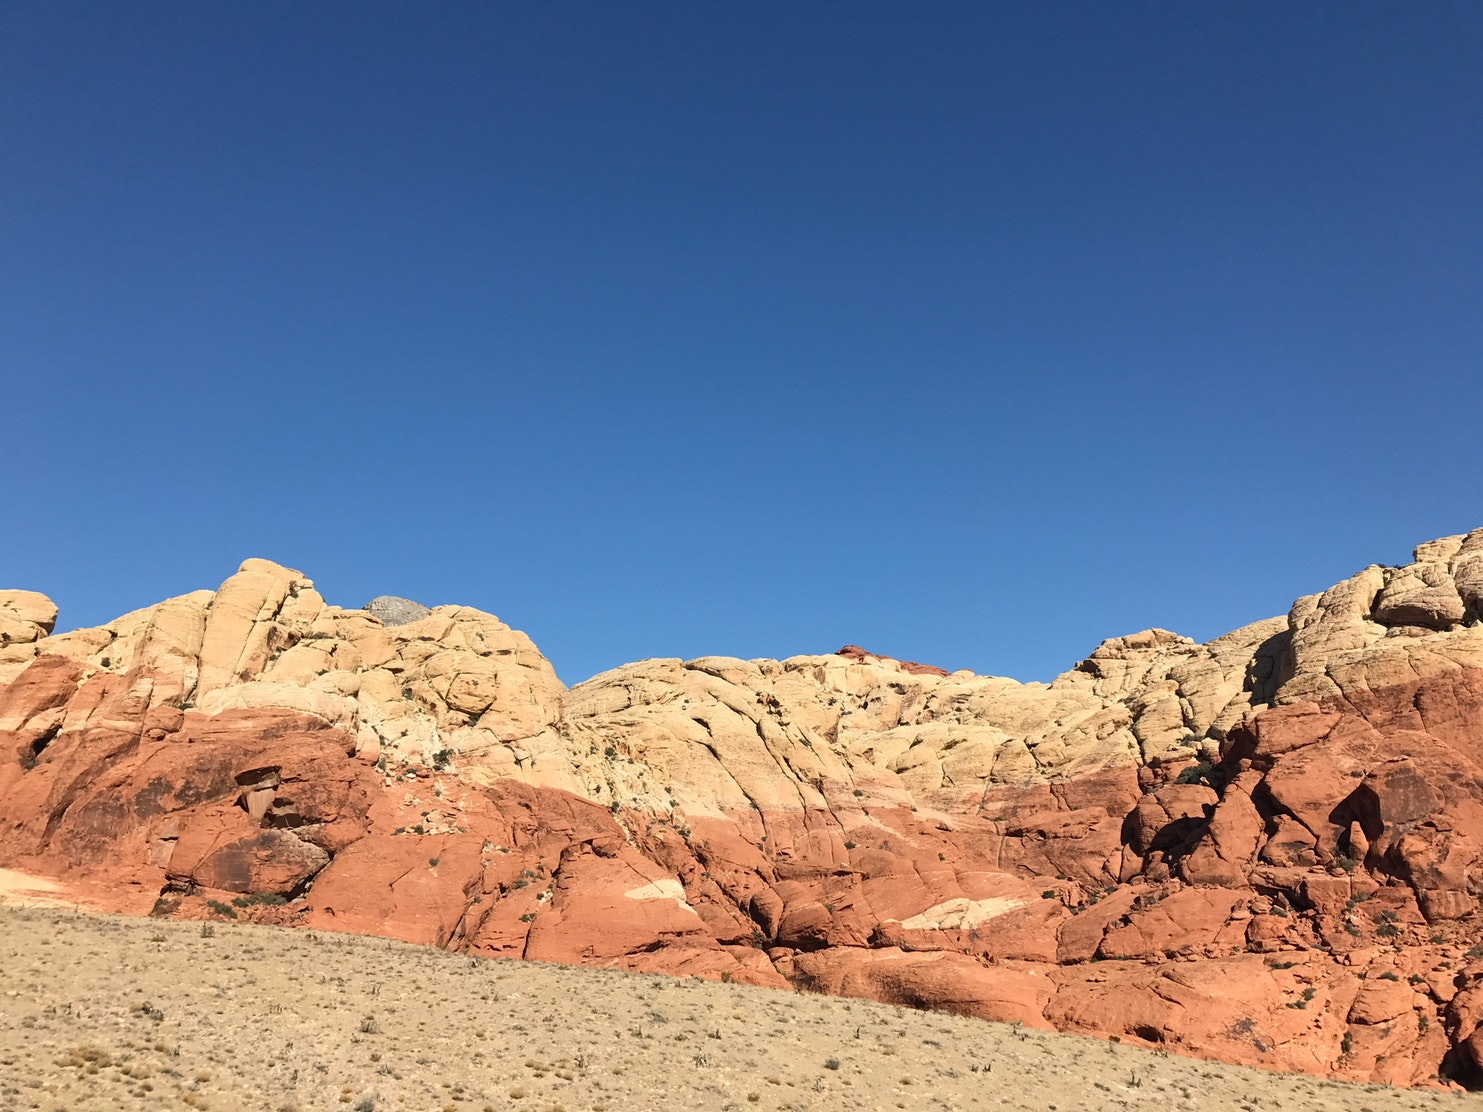 Hike or Trail Run White Rock to Willow Springs